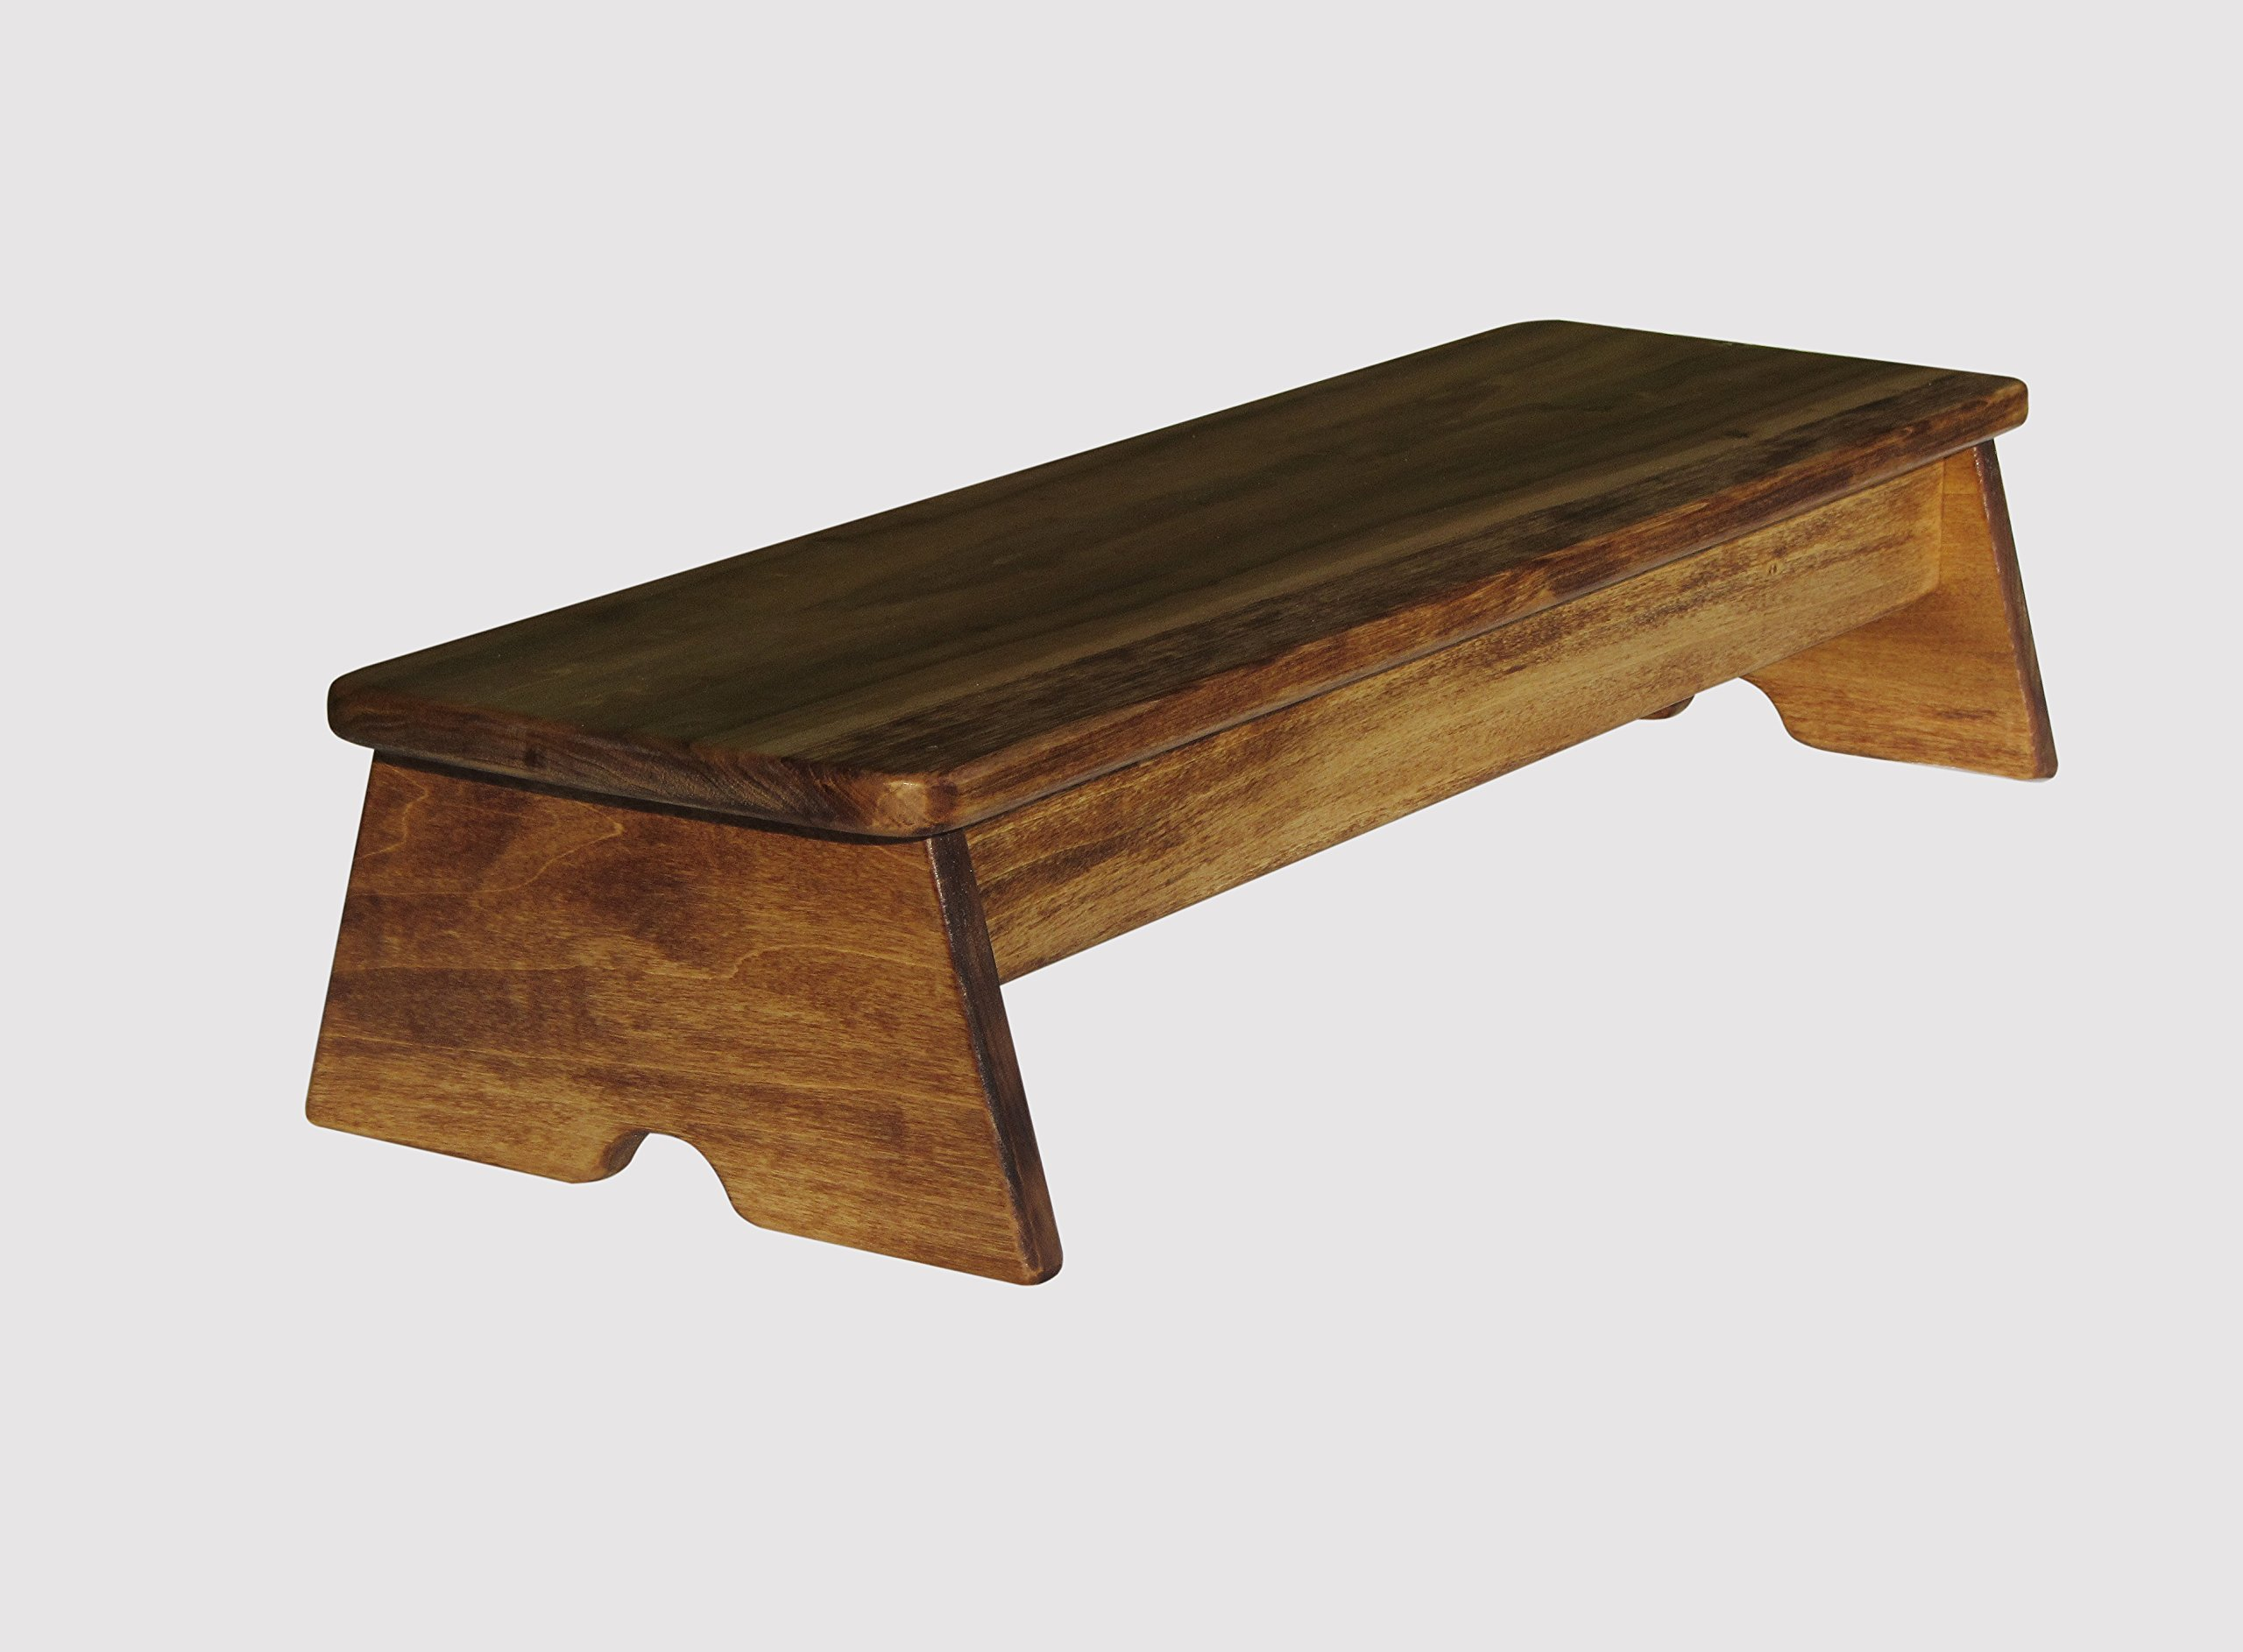 Stability Bedside Foot Stool 6'' Tall (Made in the USA) (Maple Stain - 6'')